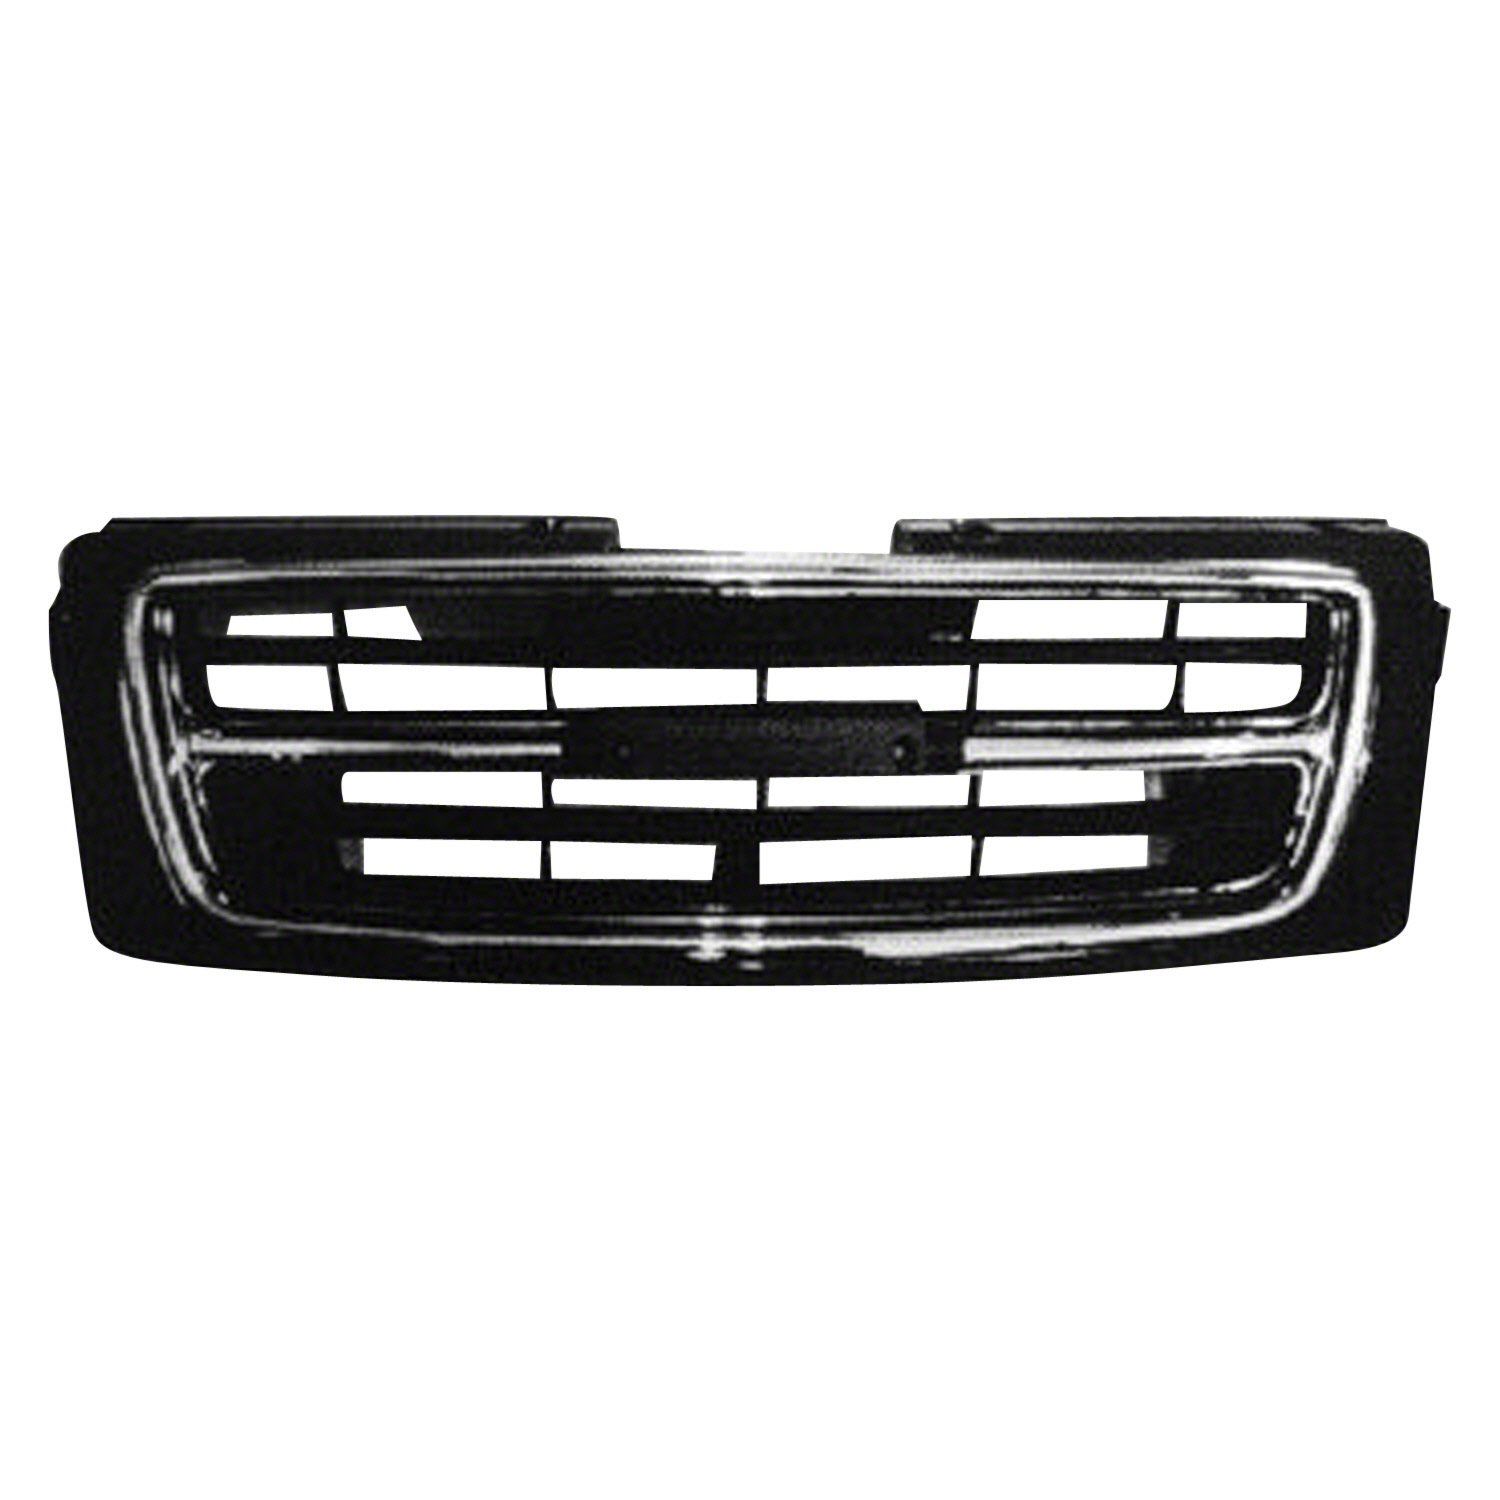 Cheap Isuzu Trooper Dash Find Deals On Line At 1999 Rodeo Ls Get Quotations Crash Parts Plus Front Grille Assembly For 1998 Iz1200132